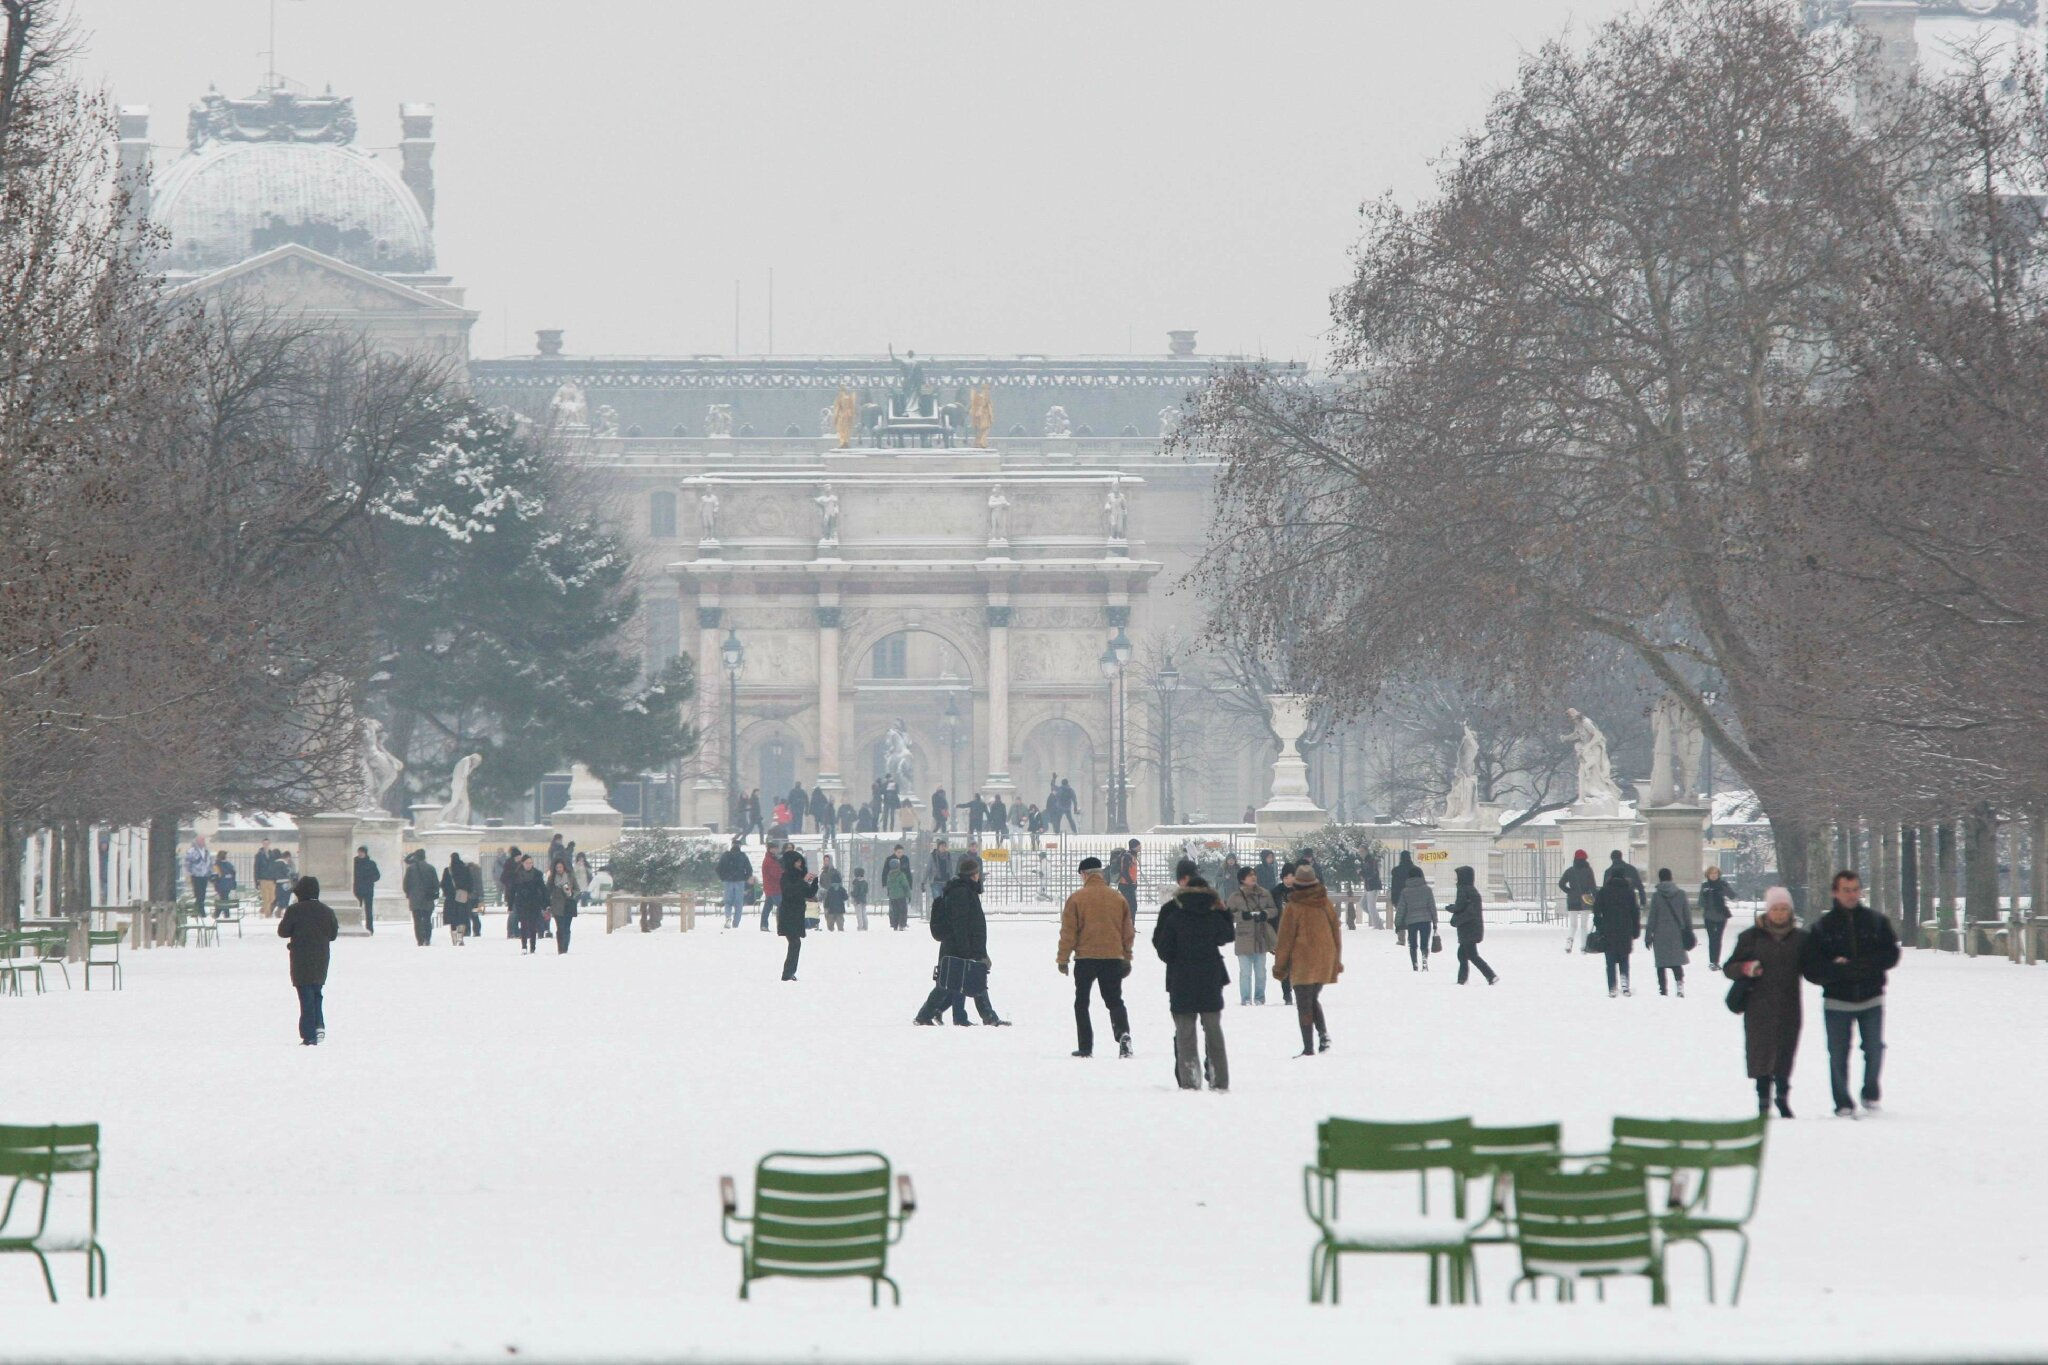 Paris sous la neige. © Photo Michel Stoupak. Sam 19.01.2013, 10:34.